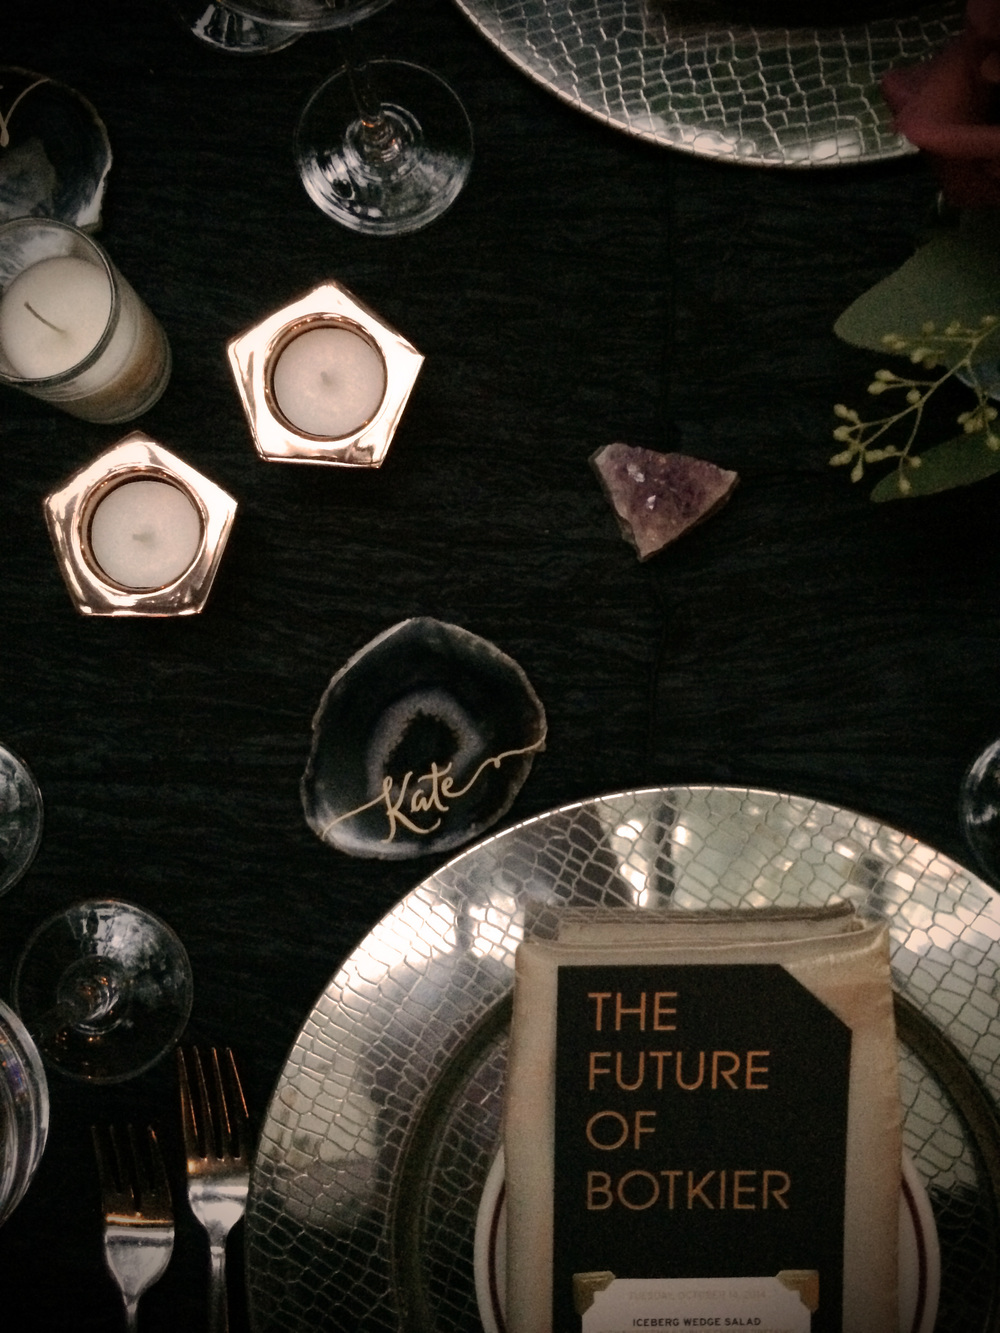 Agate coasters with handwritten names were used as place cards for each VIP guest. Amethyst clusters and rose gold geometric votive holders added to the texture of a luxurious evening out.